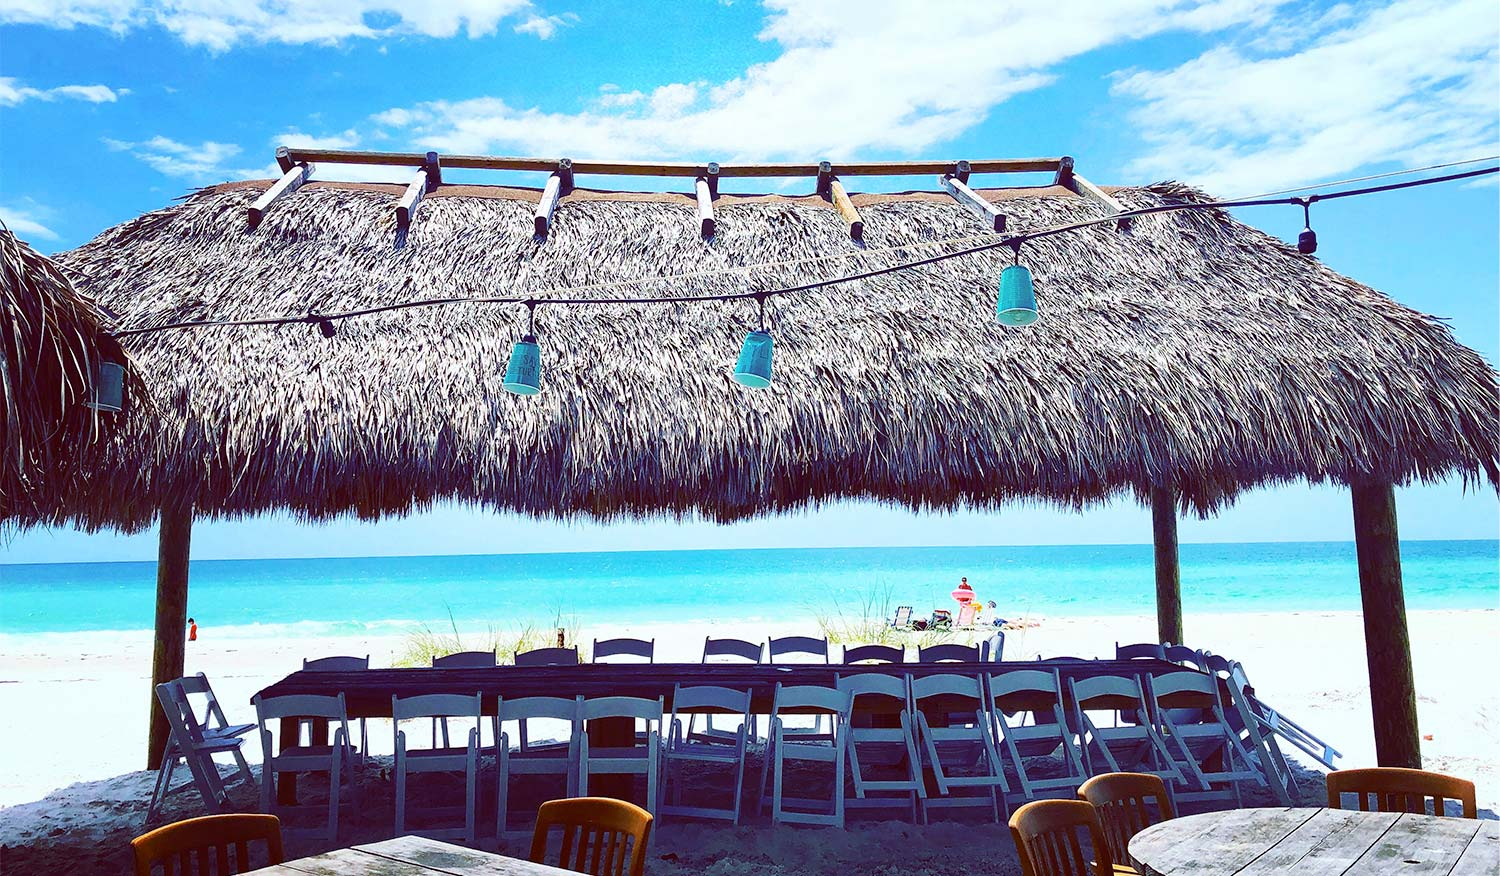 Long table under tiki view of blue gulf waters in background